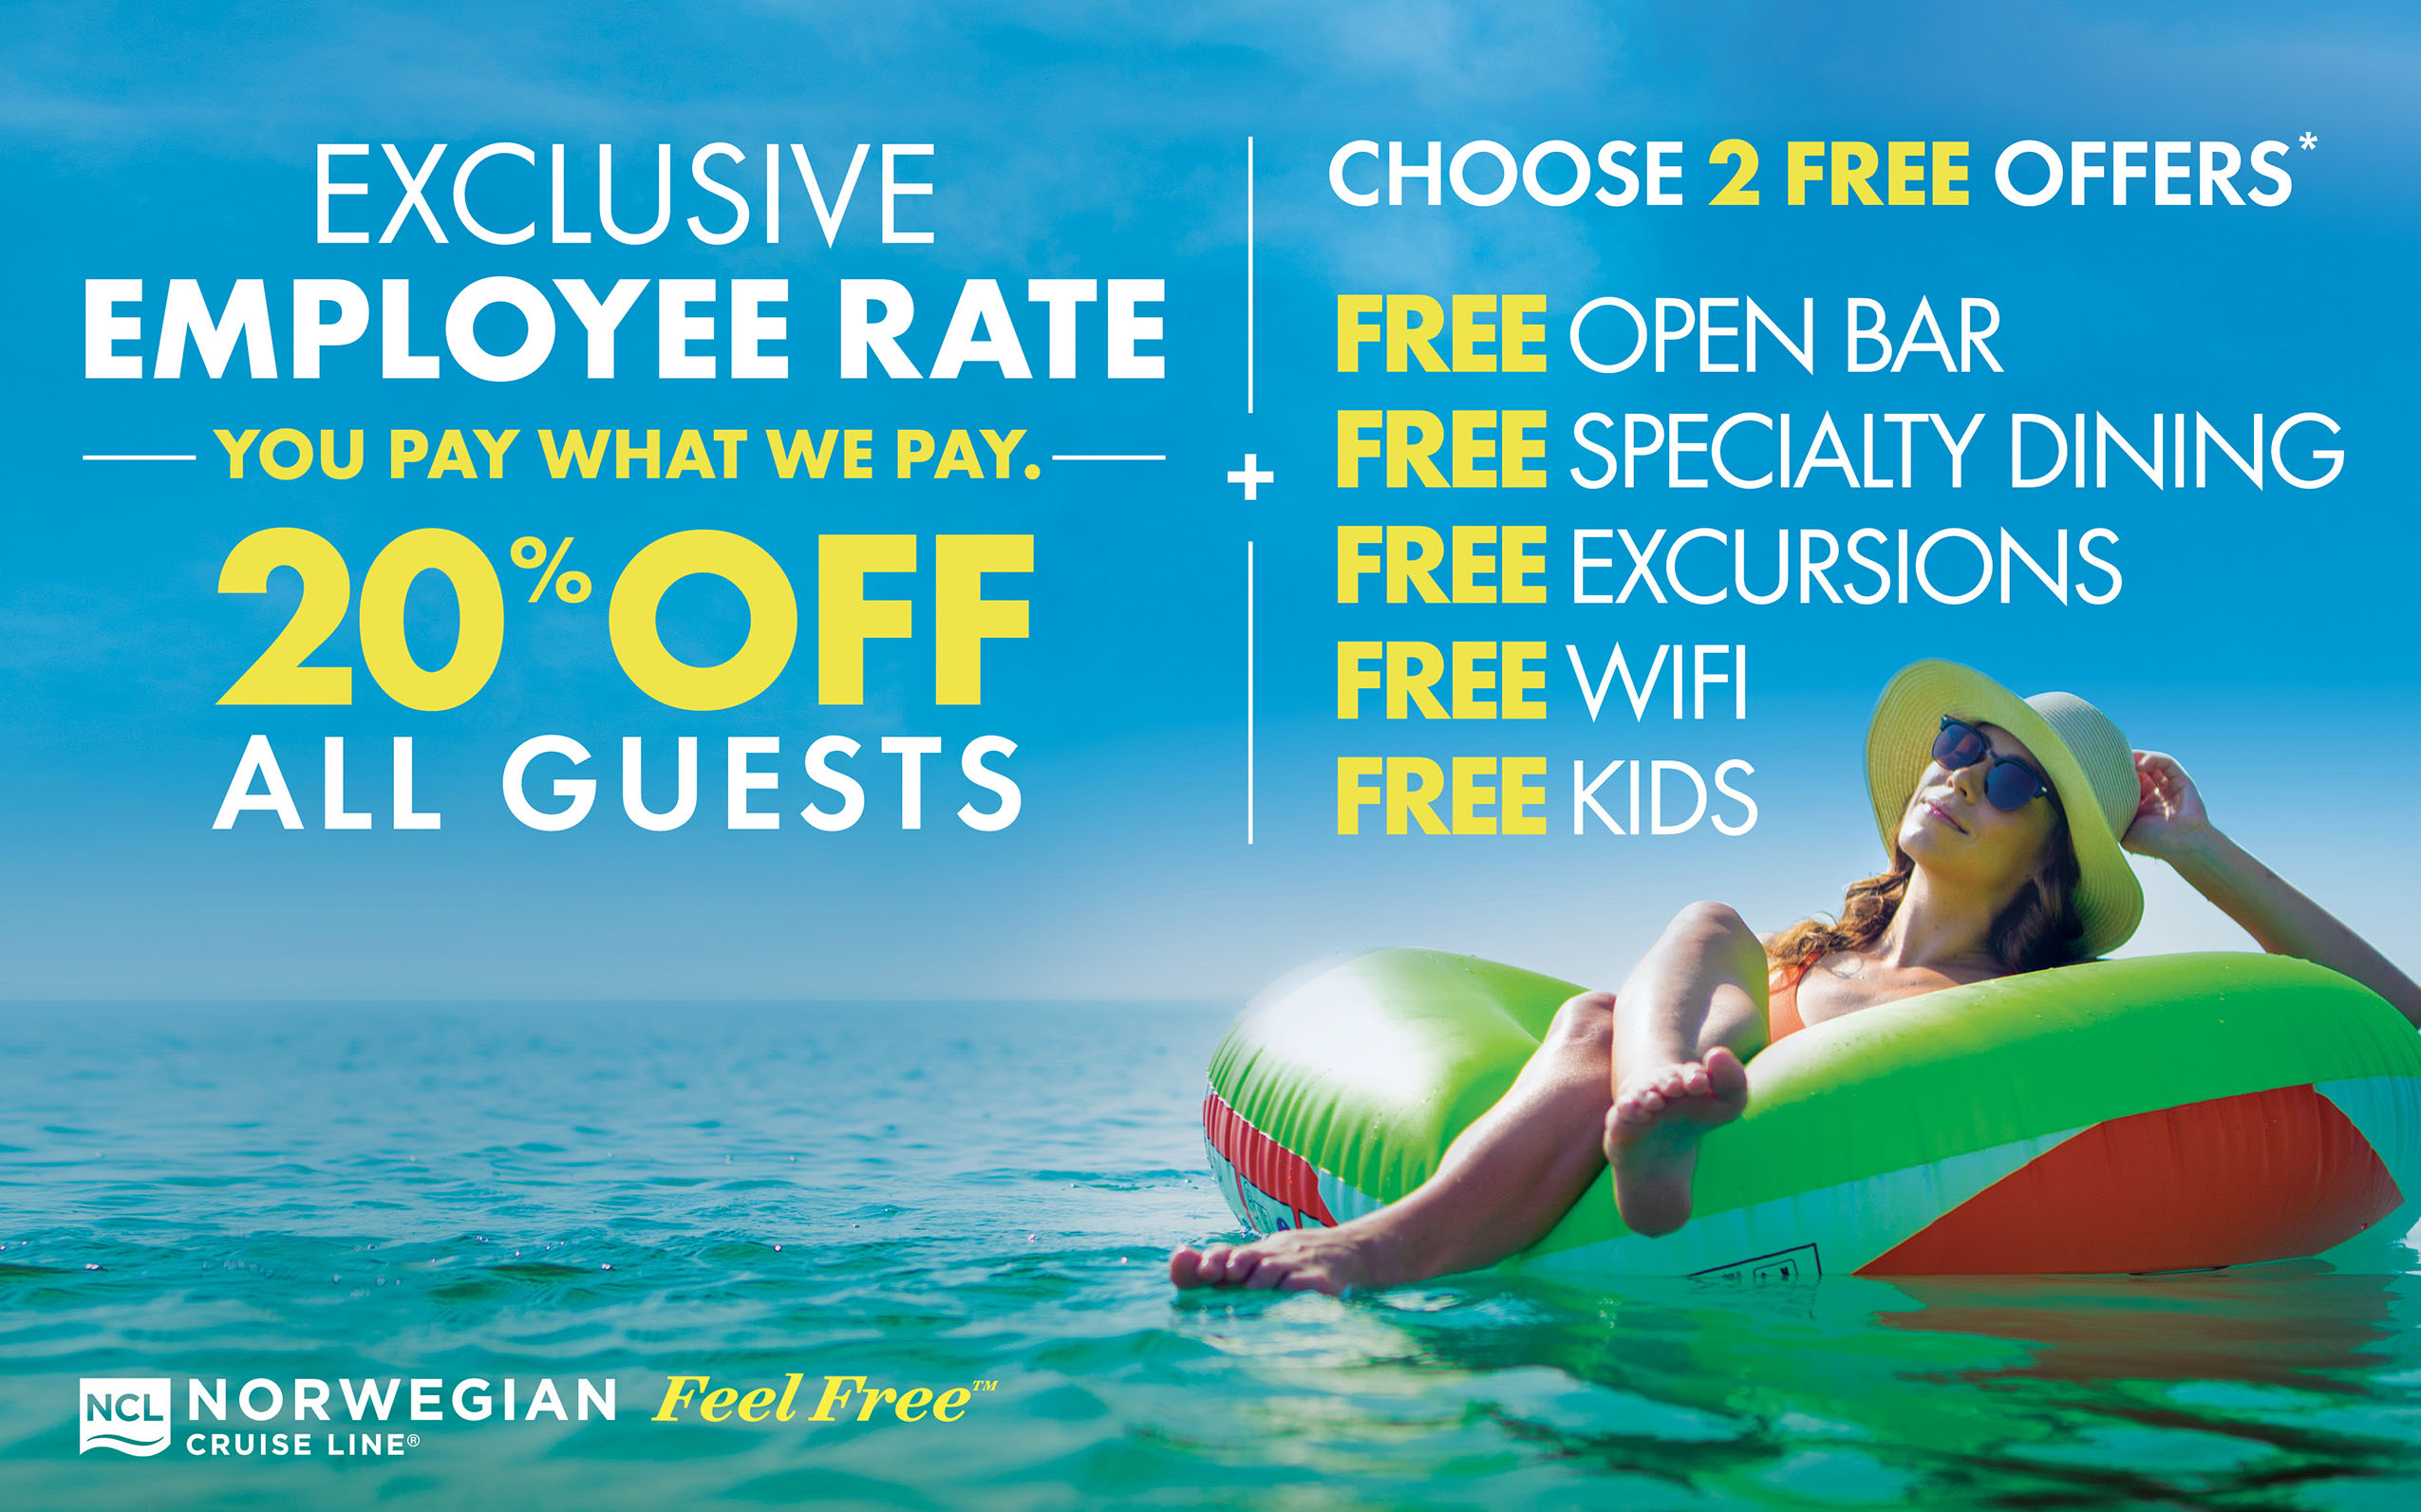 Norwegian - Get Up to 33% off all Guests